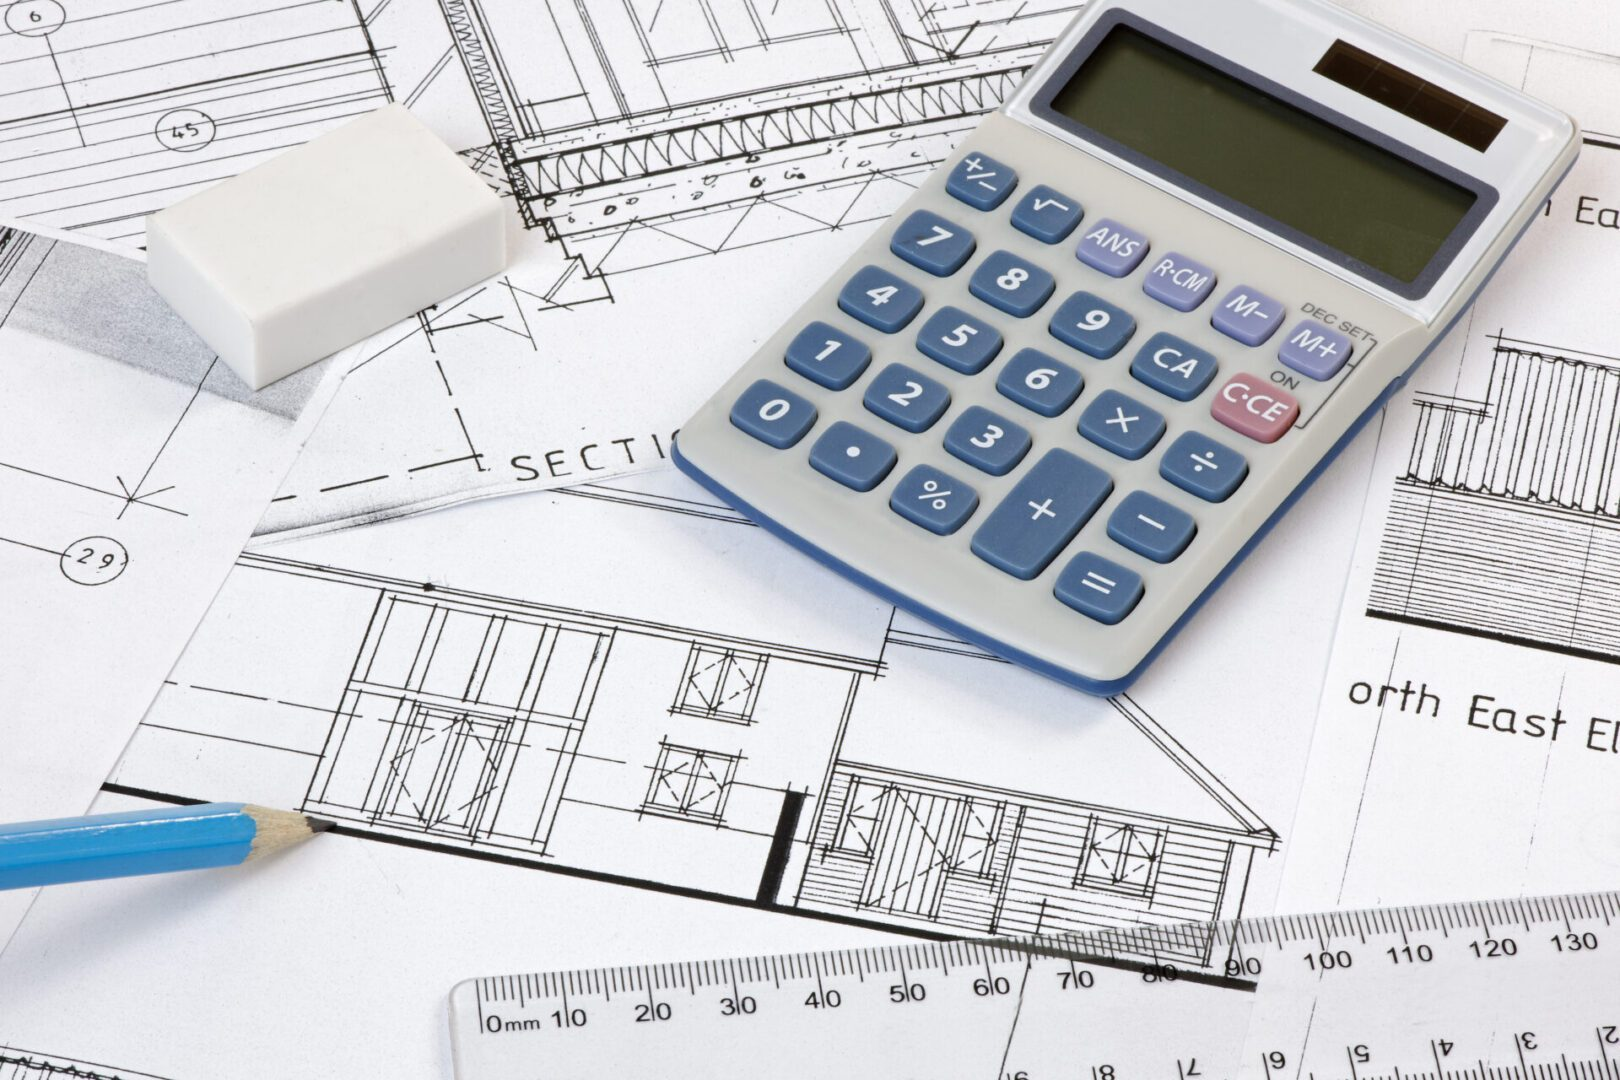 Calculator,rubber,pencil and ruler on architectural drawings. Plans are copyright-free